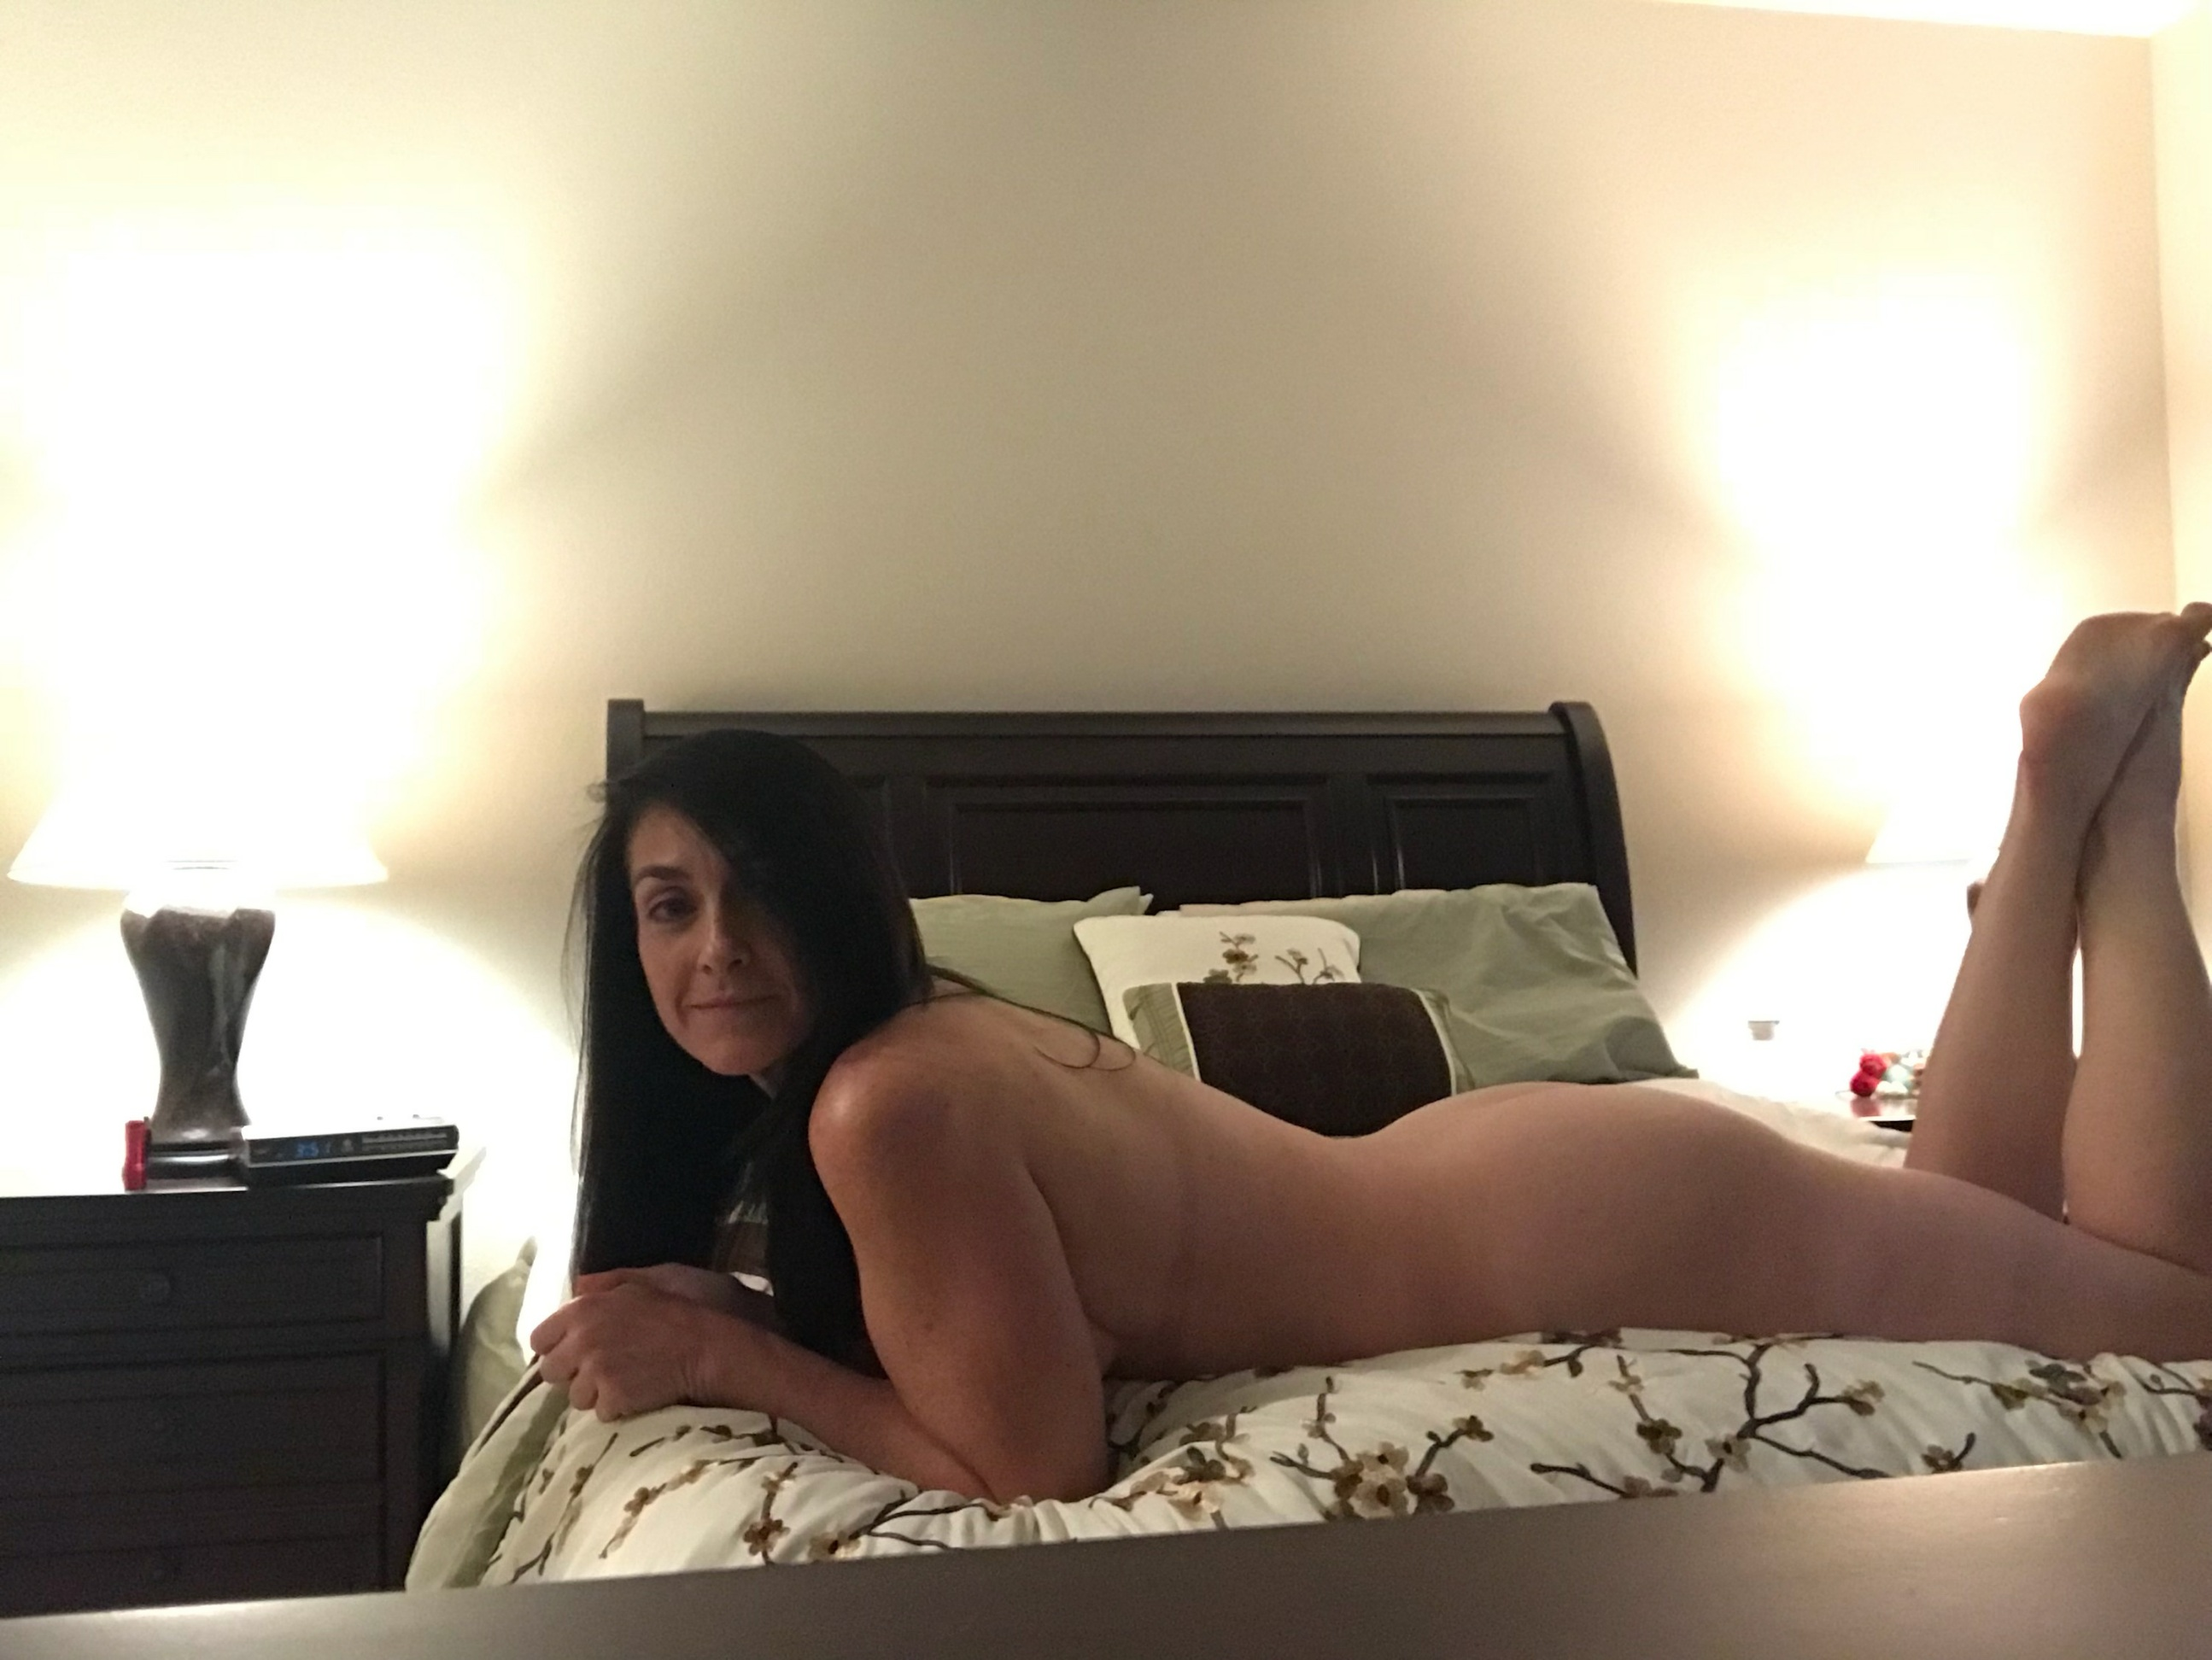 amateur porn uploaded in jacksonville